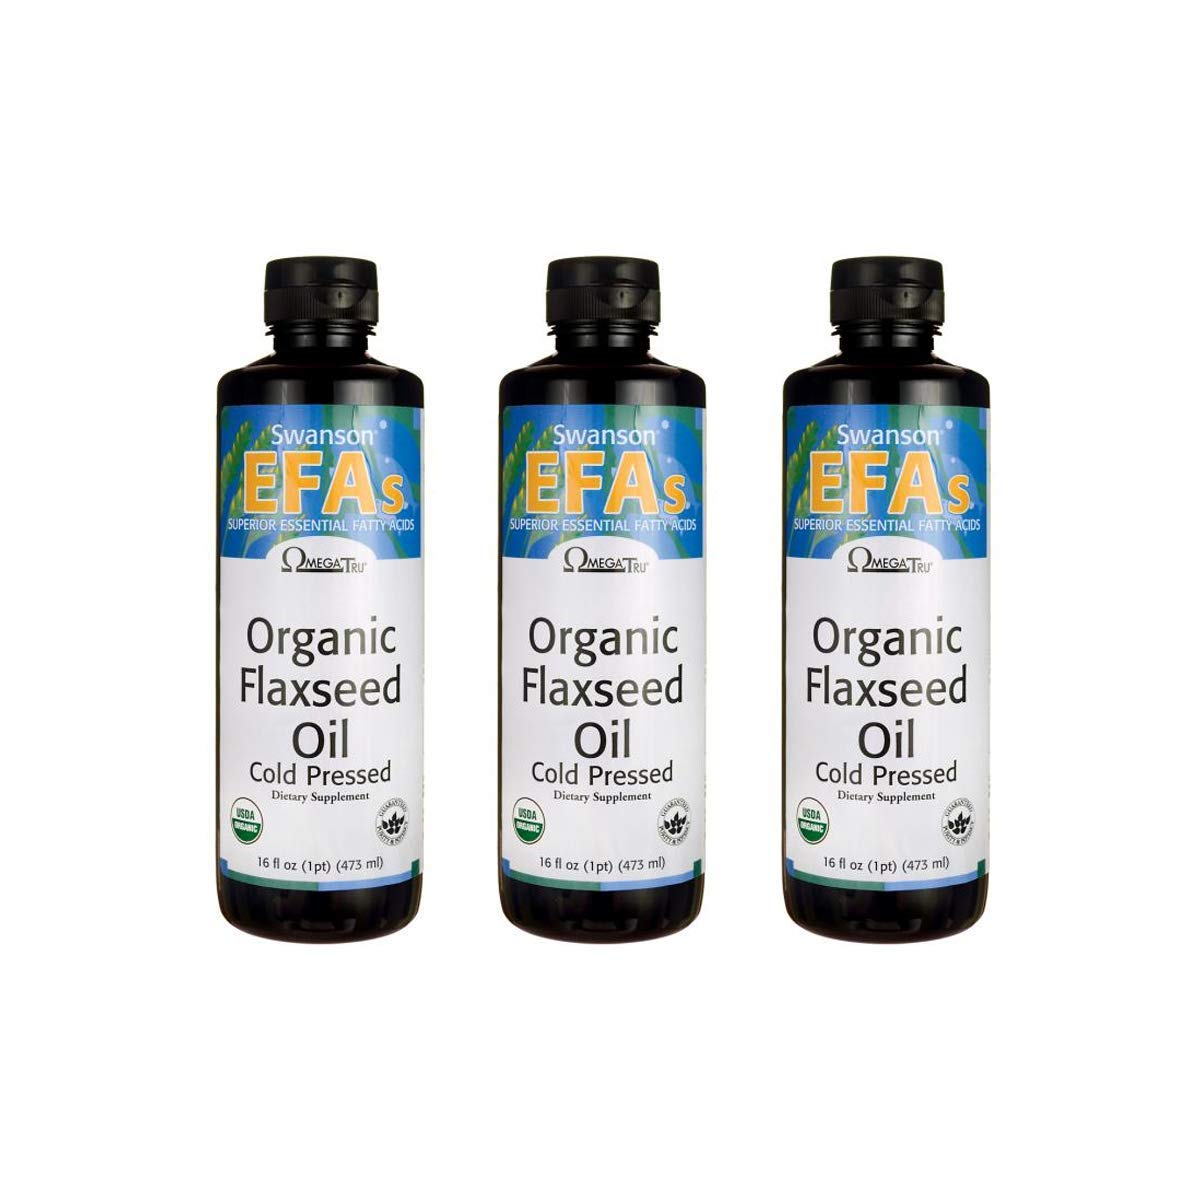 Swanson Flaxseed Oil (Omegatru) 14 g 16 fl oz Liquid 3 Pack by Swanson